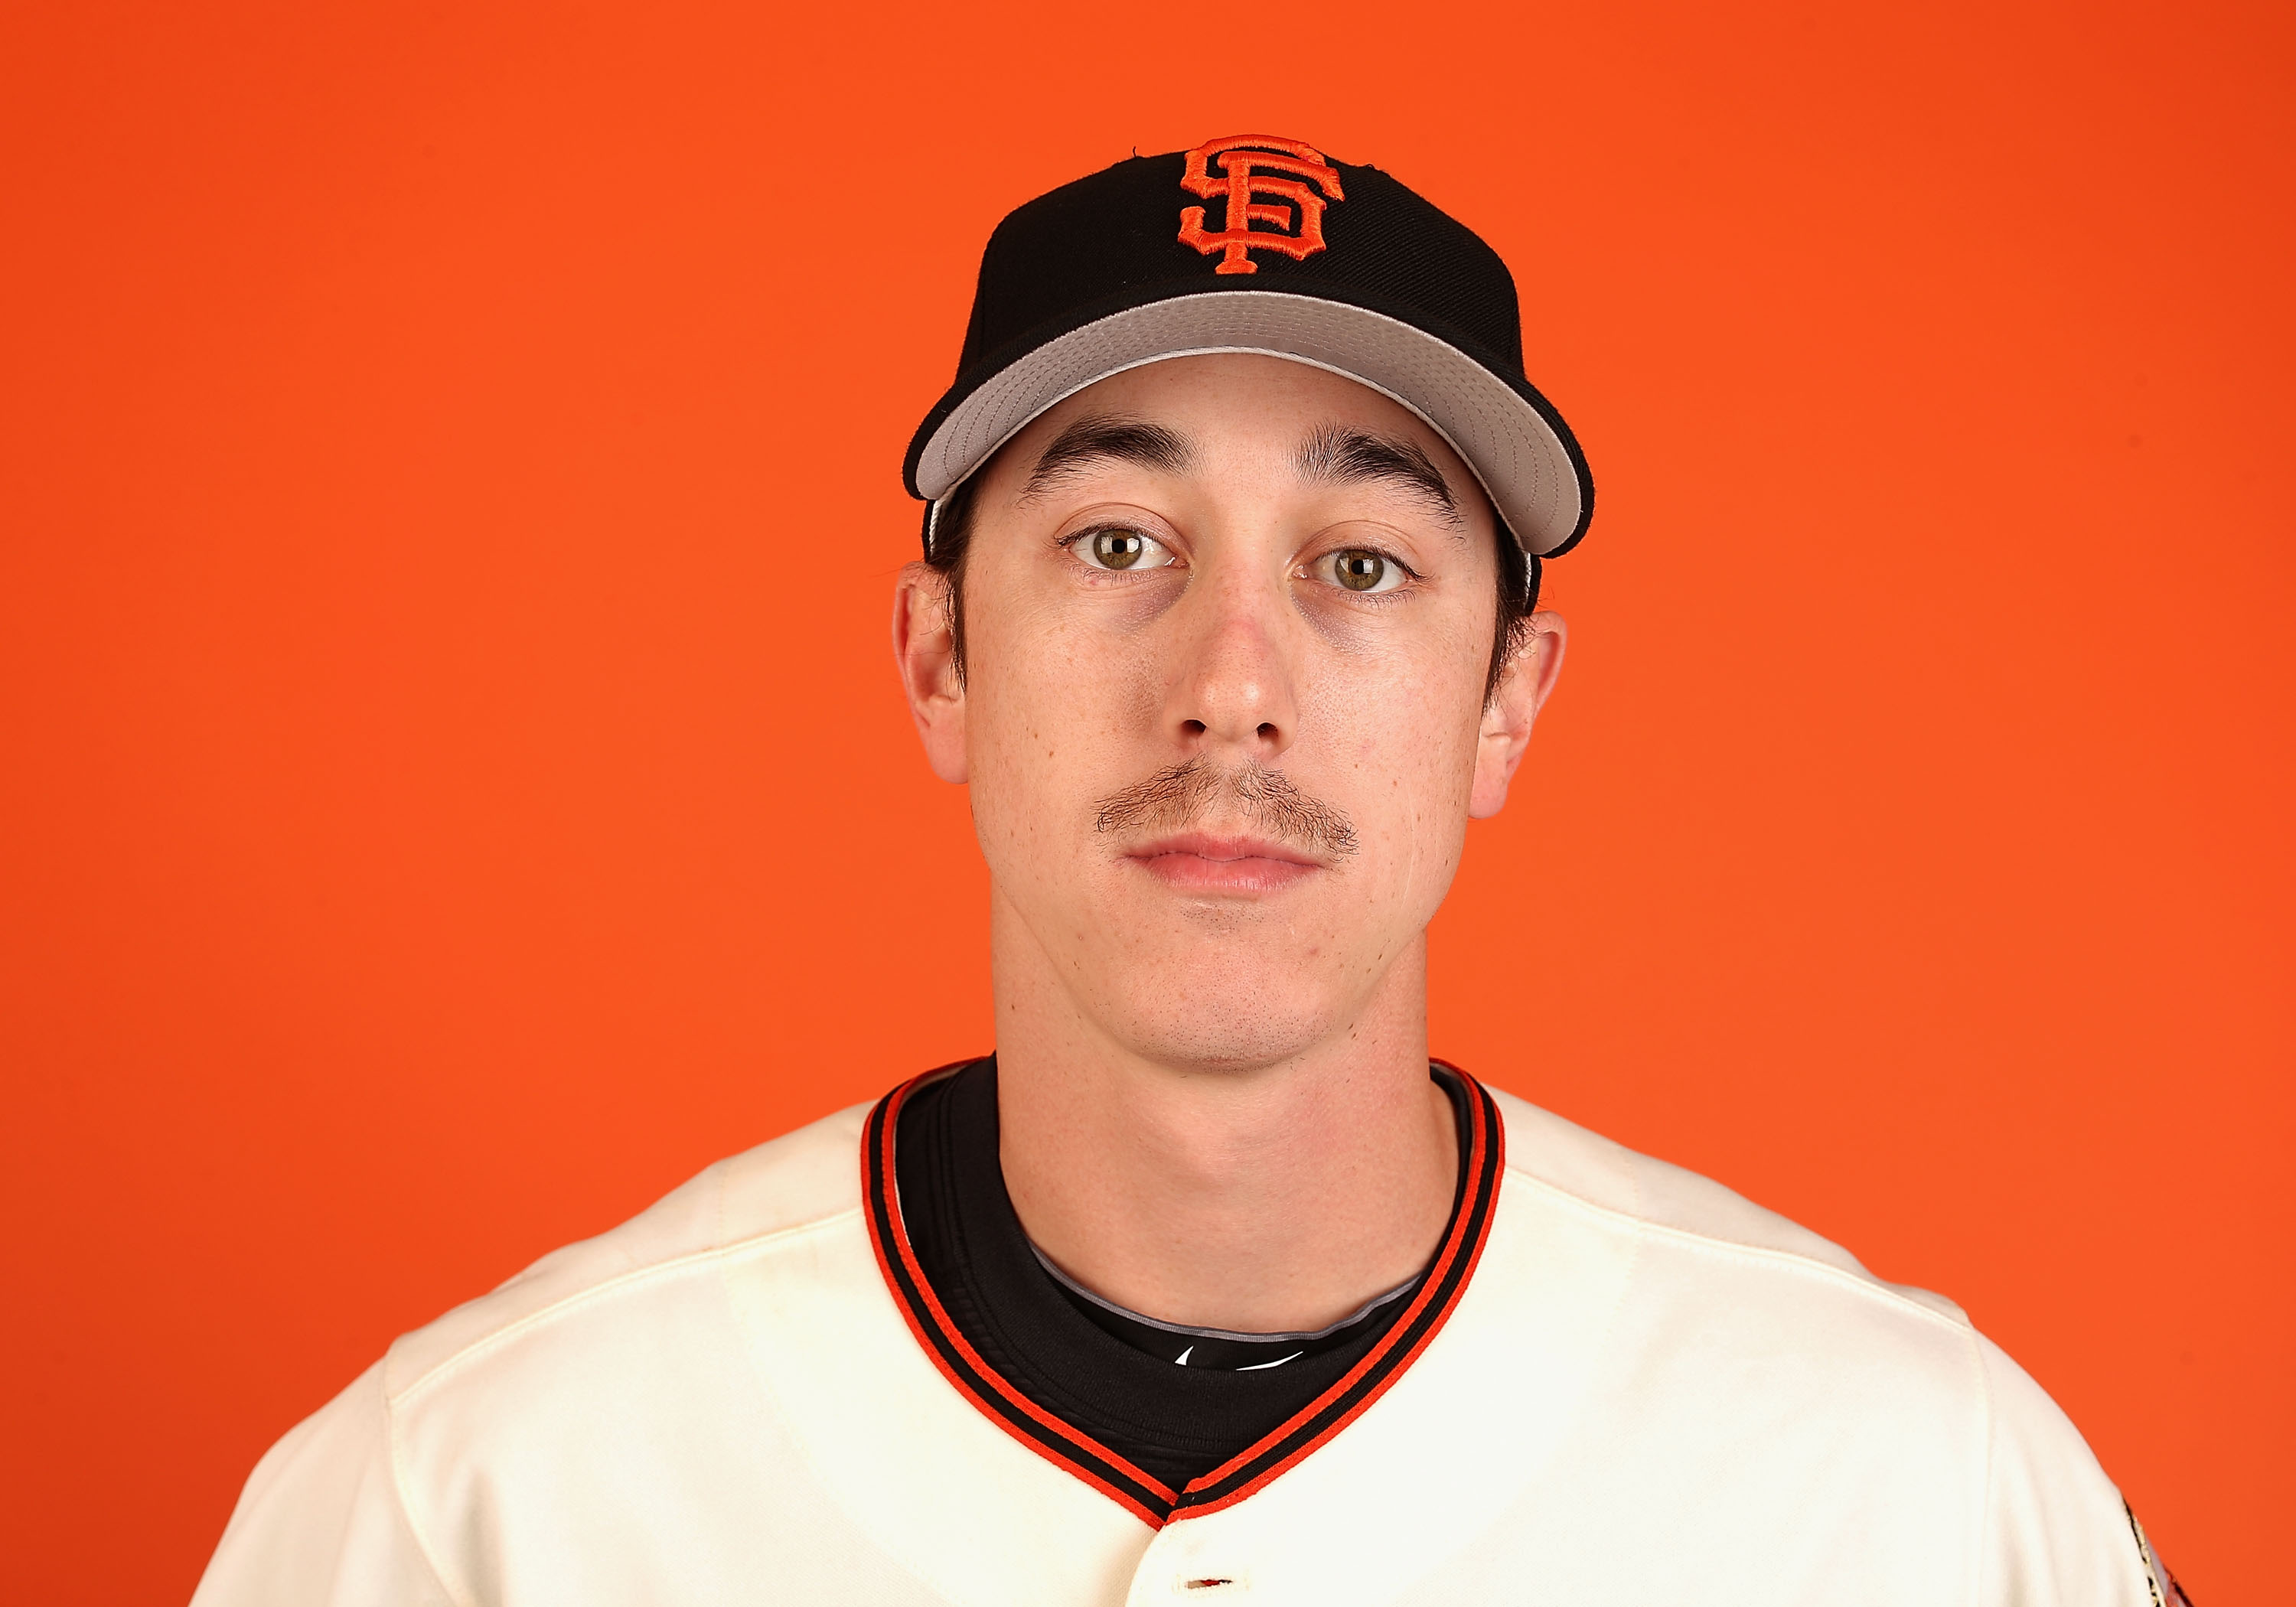 Say goodbye to Tim Lincecum in San Francisco with a photo ...